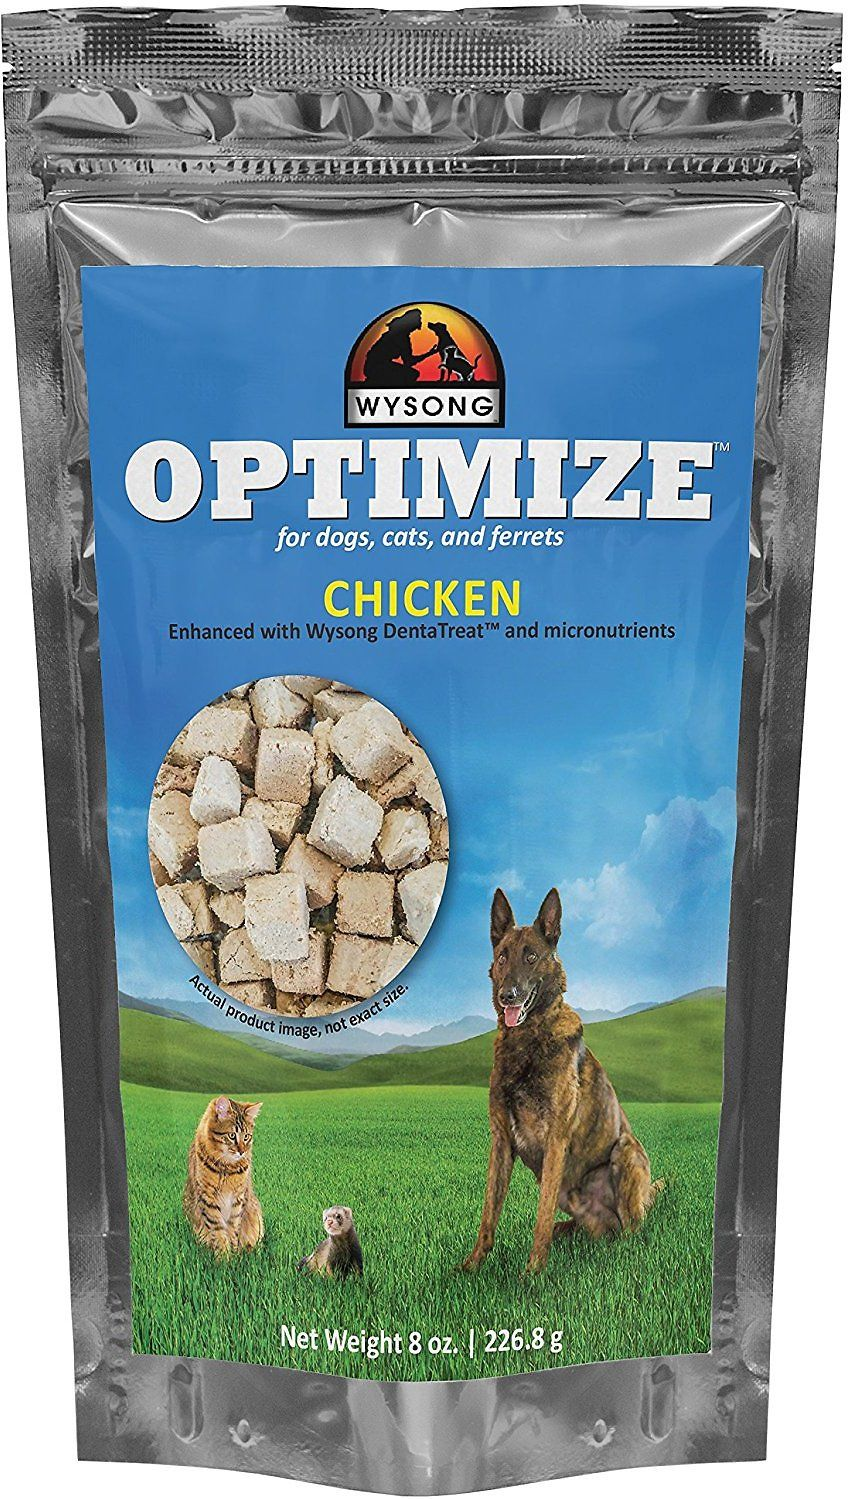 Wysong Optimize Chicken Dog, Cat & Ferret Food Topper